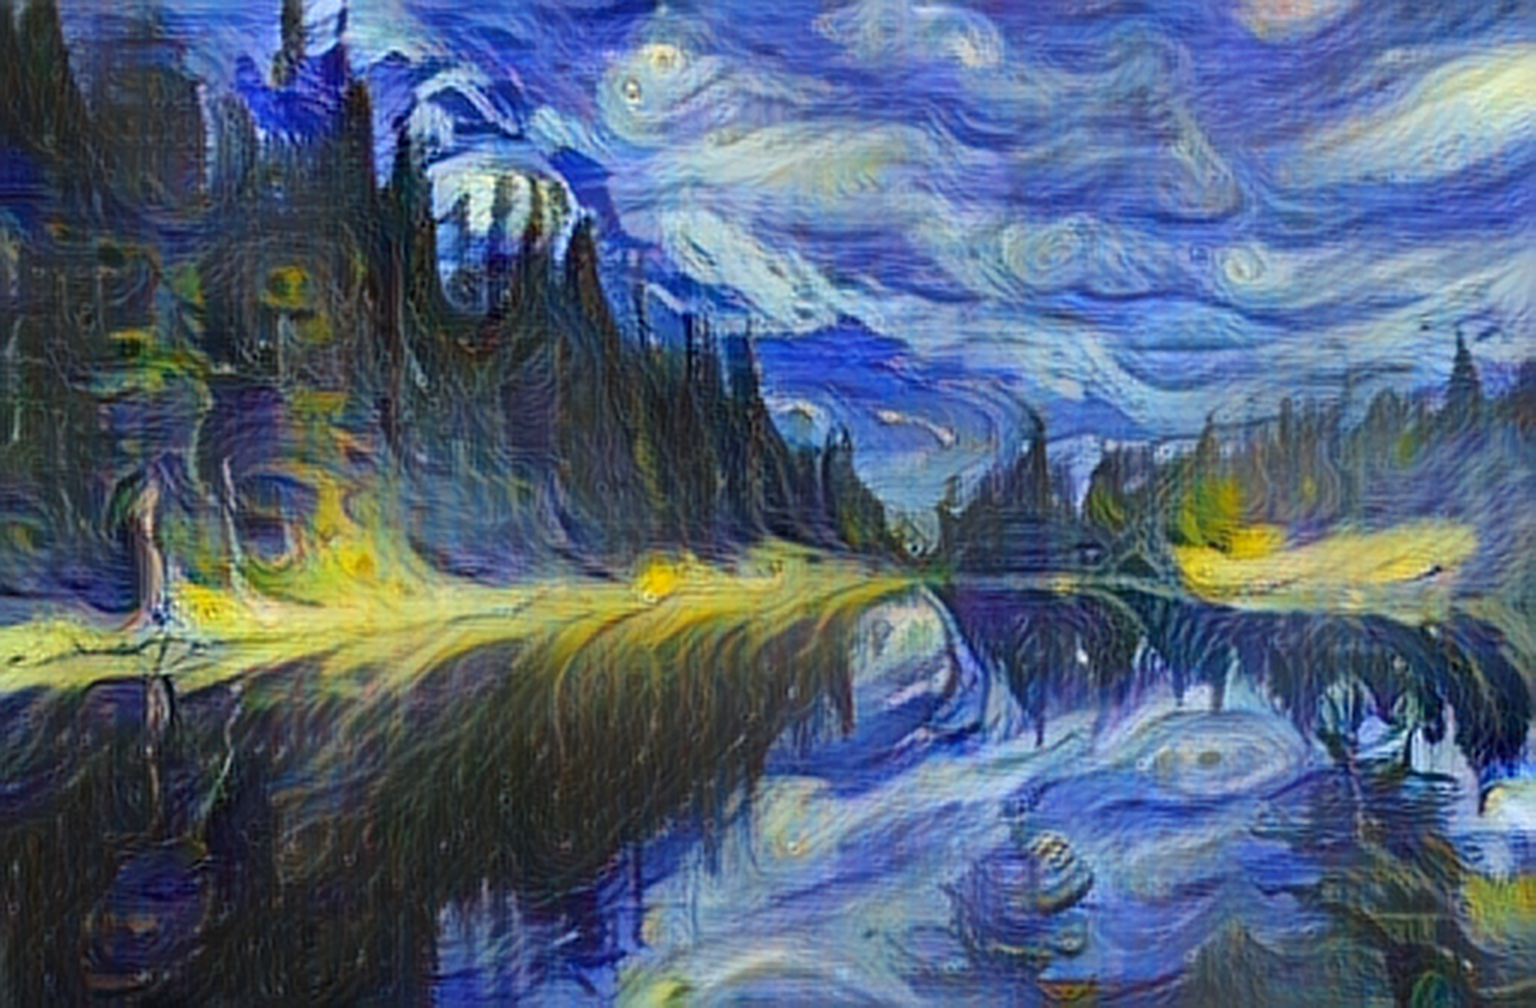 style transfer result2